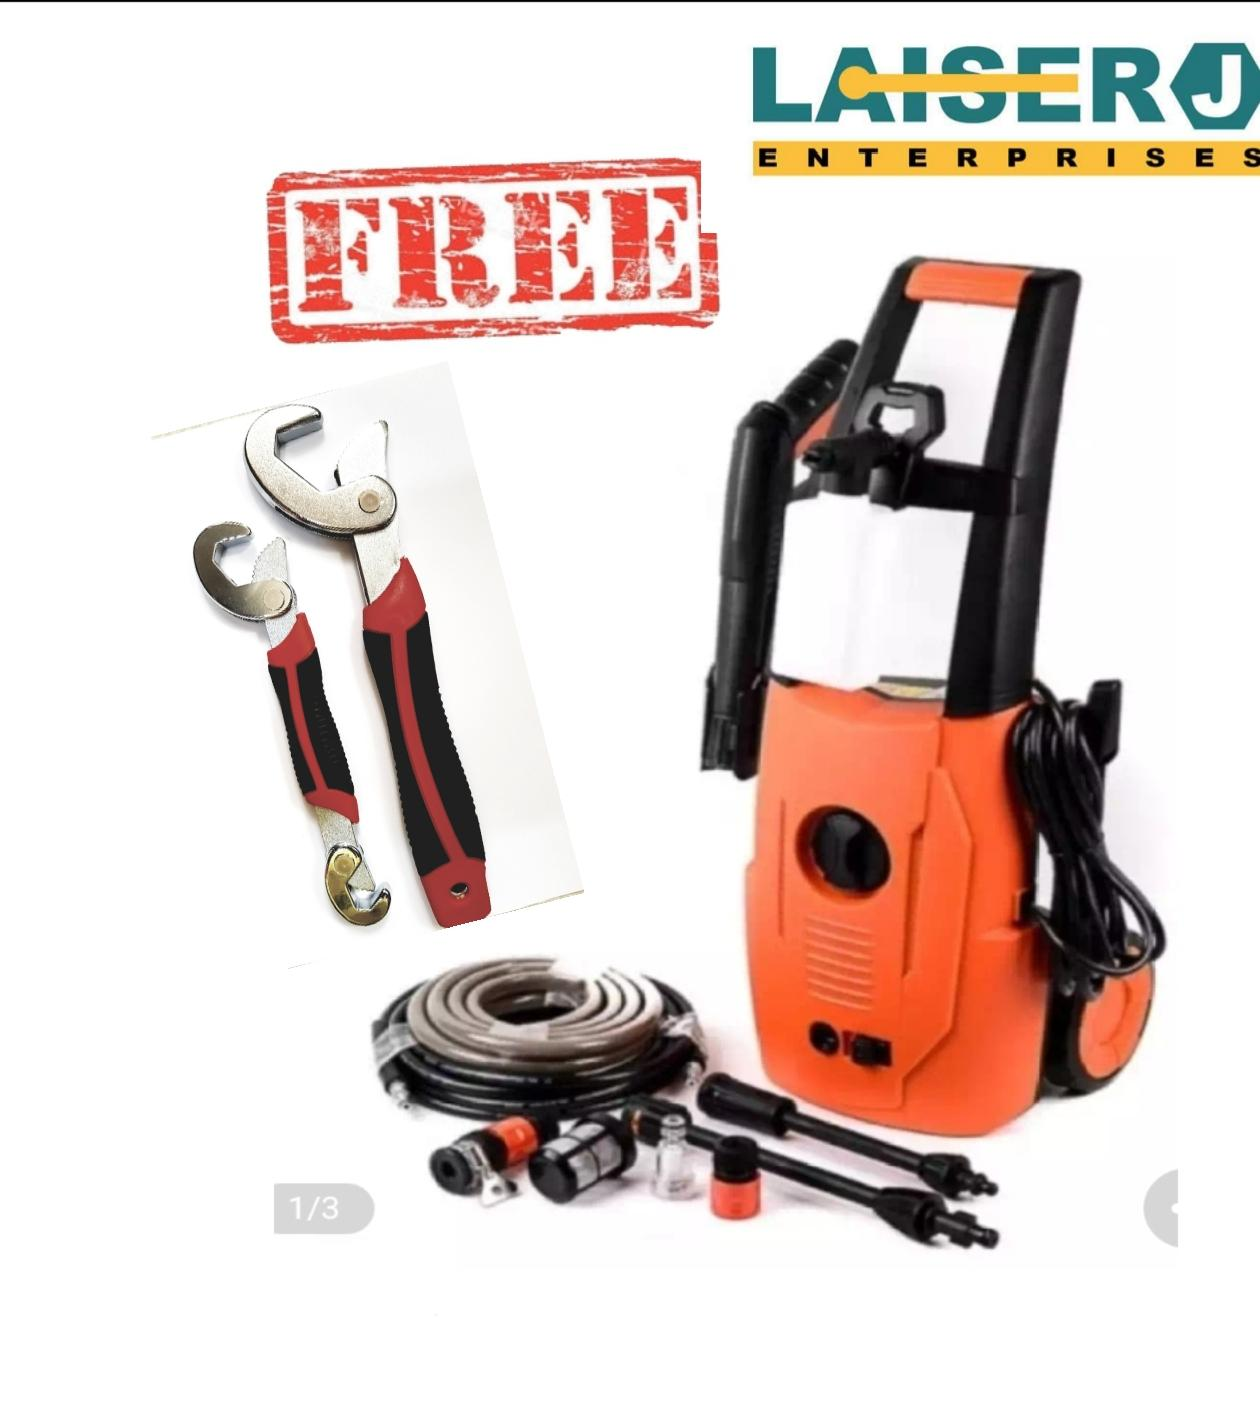 Kawasaki HPW-302 Portable Power Sprayer Pressure Washer With Free Snap n Grip (Orange) Philippines